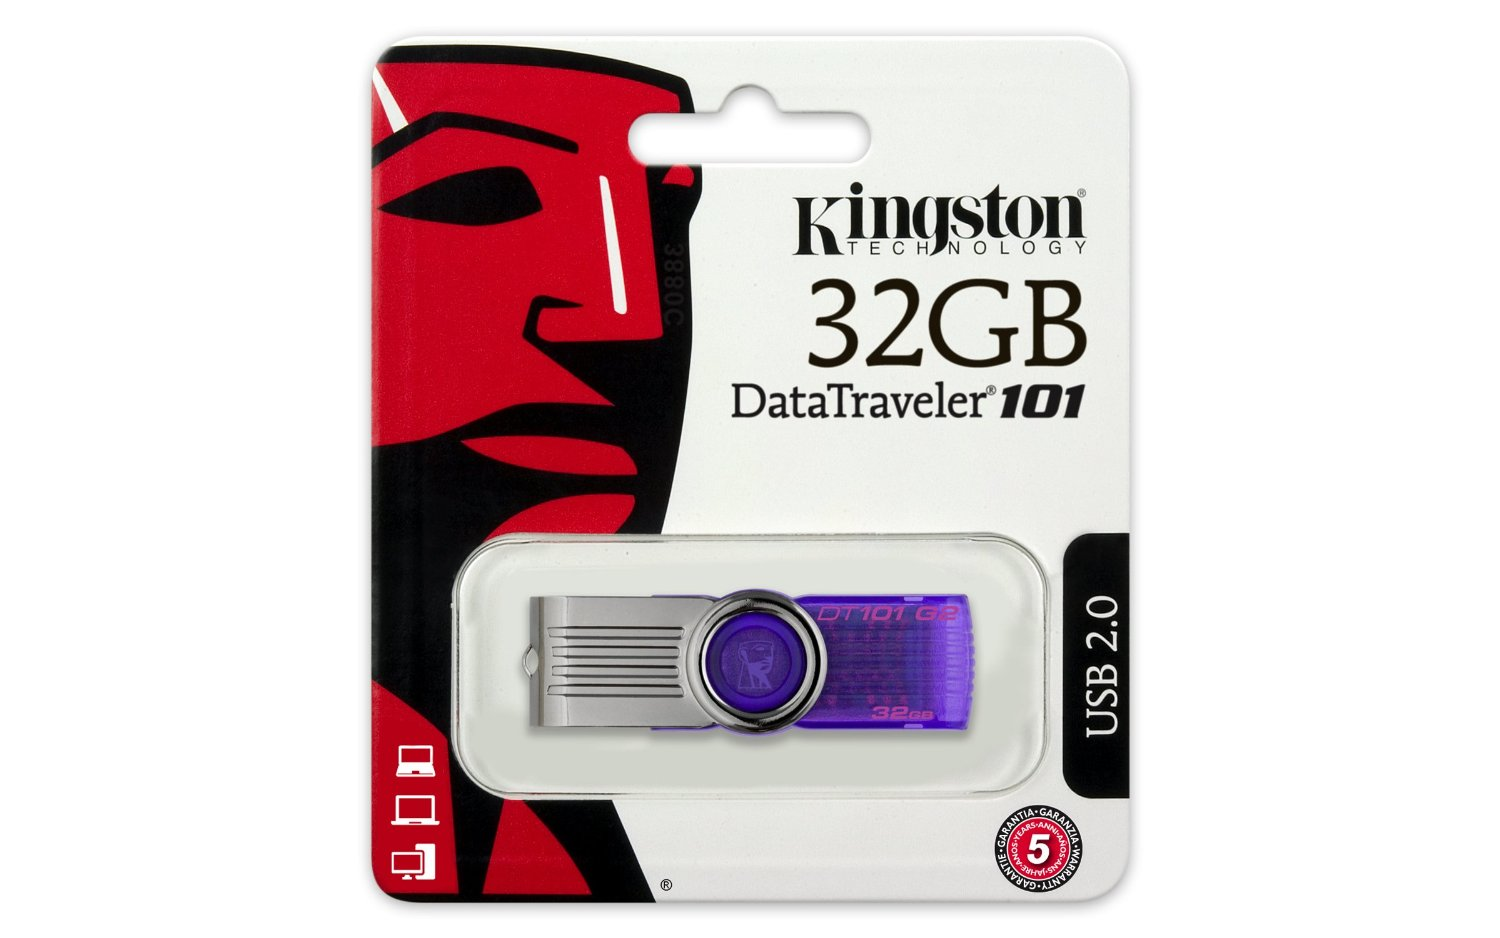 USB 32GB Kington DataTraveler 101 Generation 2 (DT101G2/32GB)